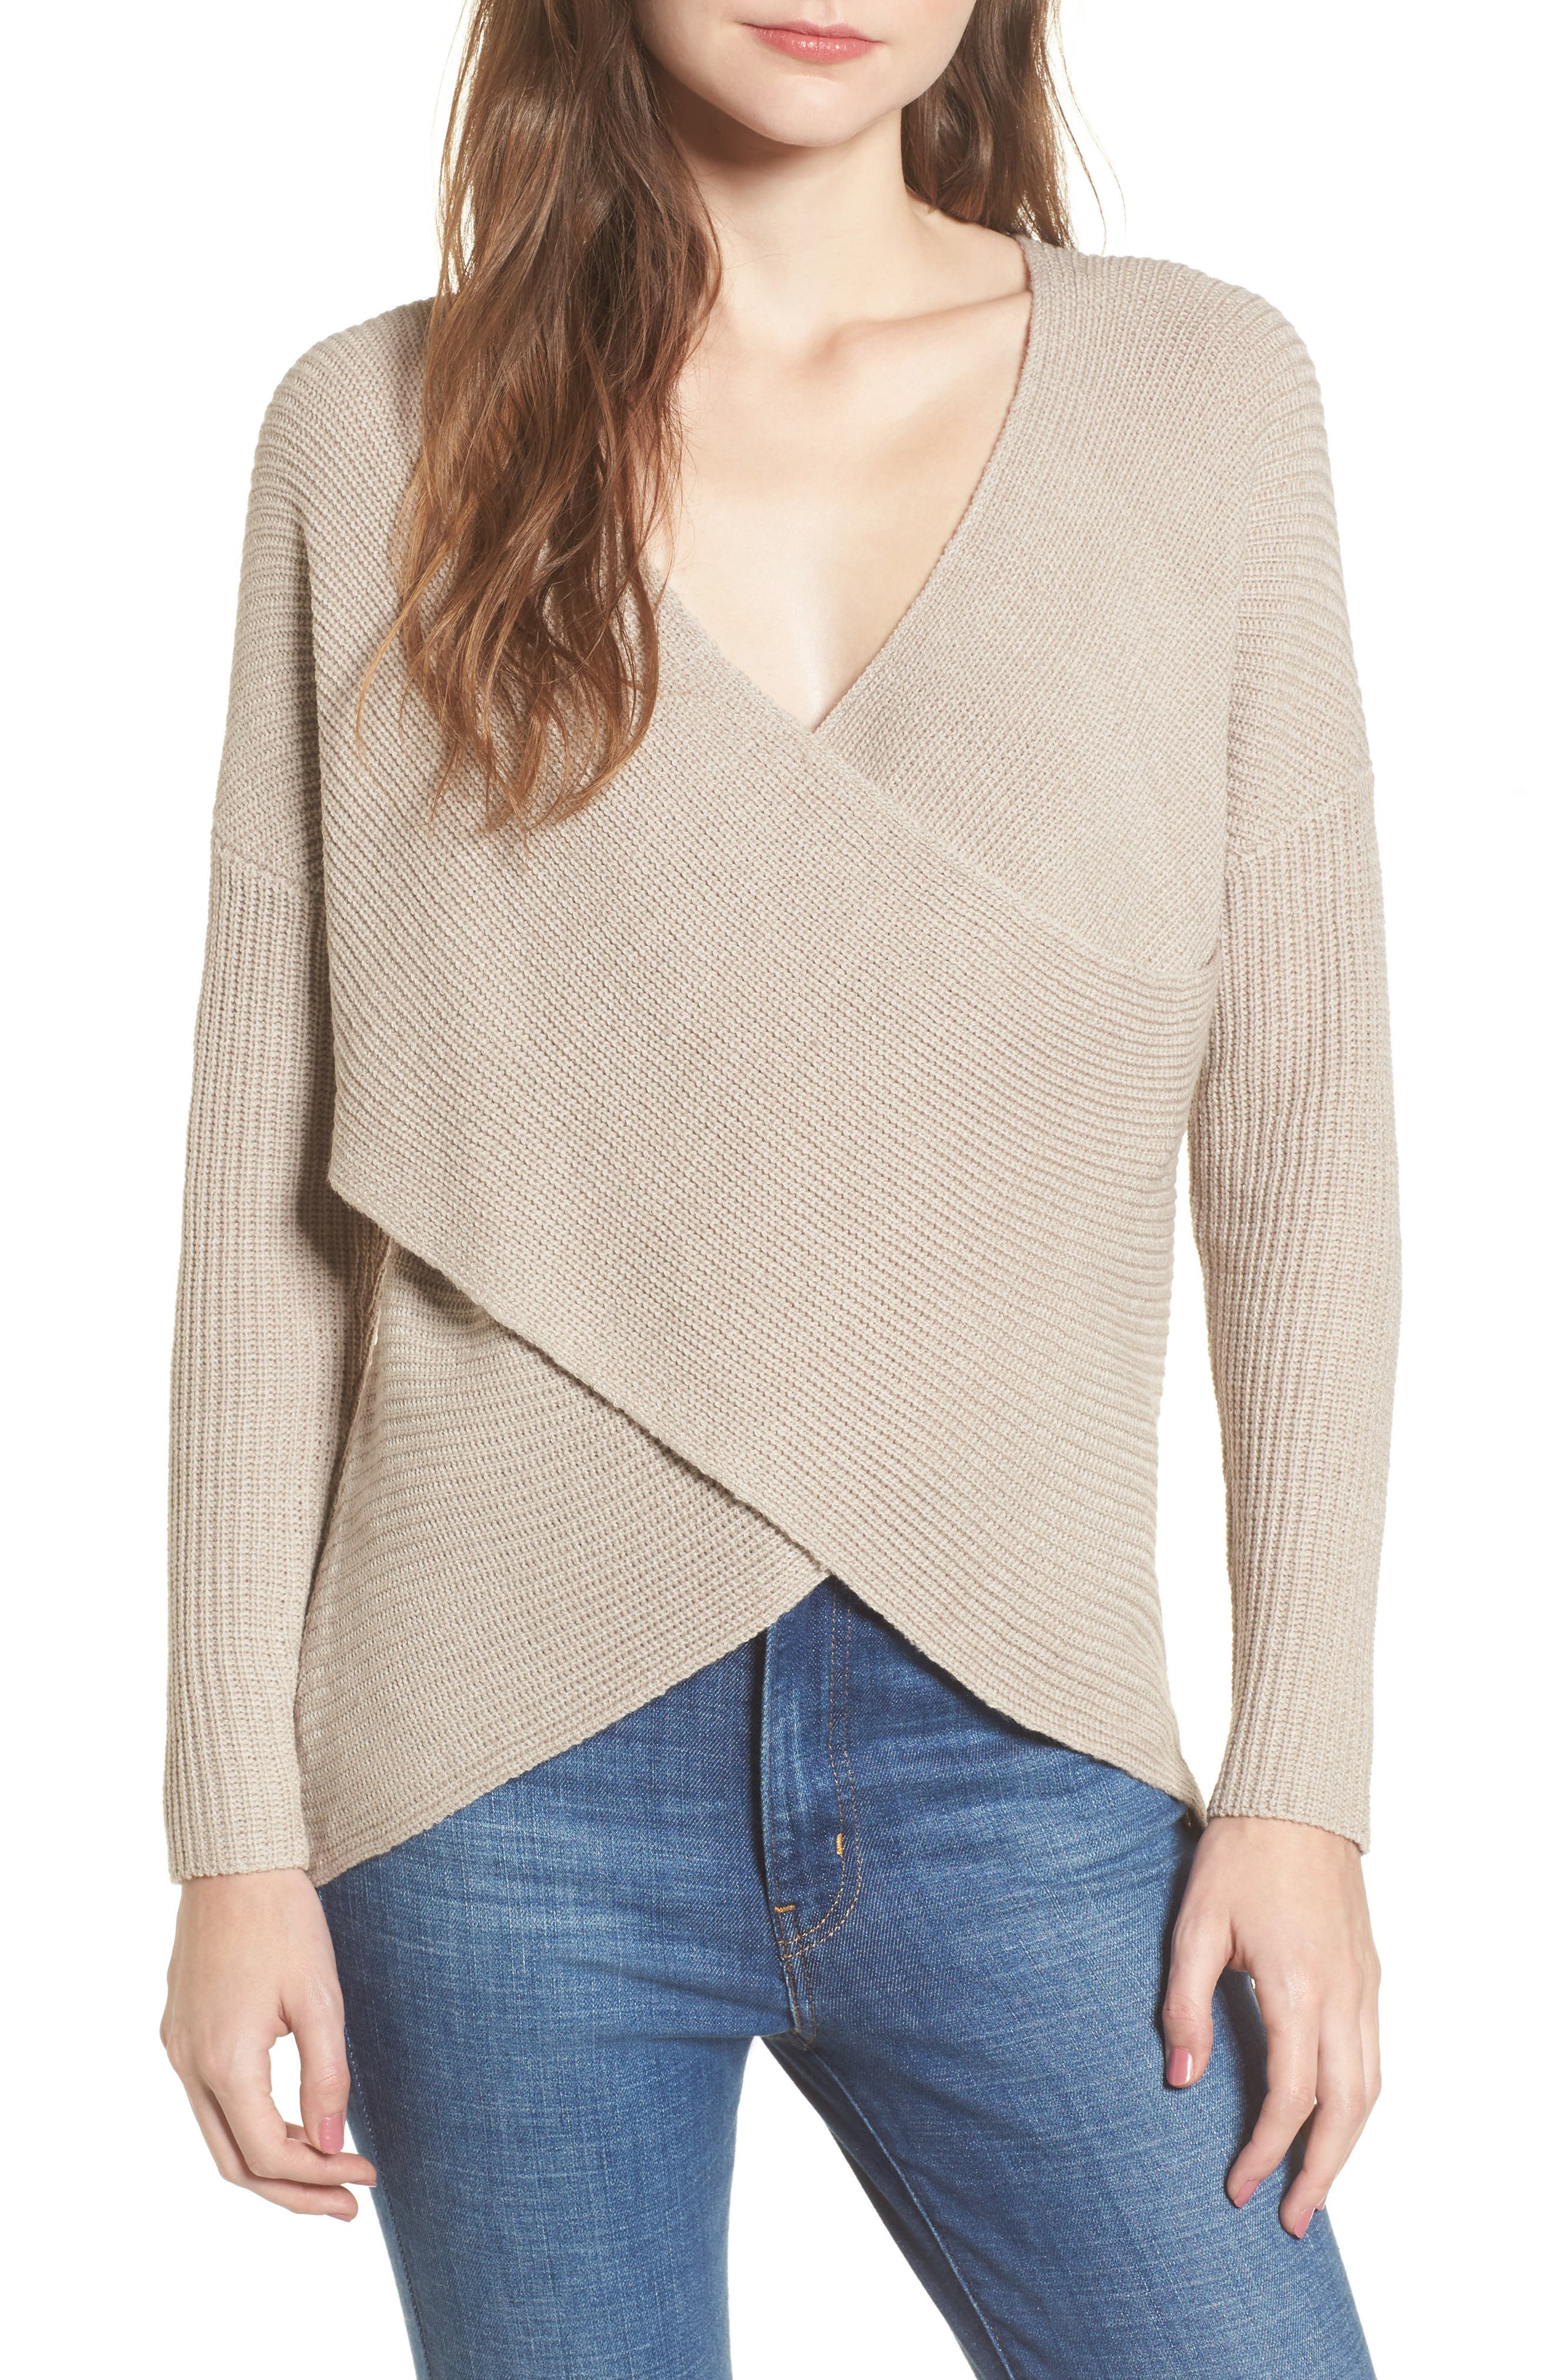 Main Image - ASTR the Label Wrap Front Sweater